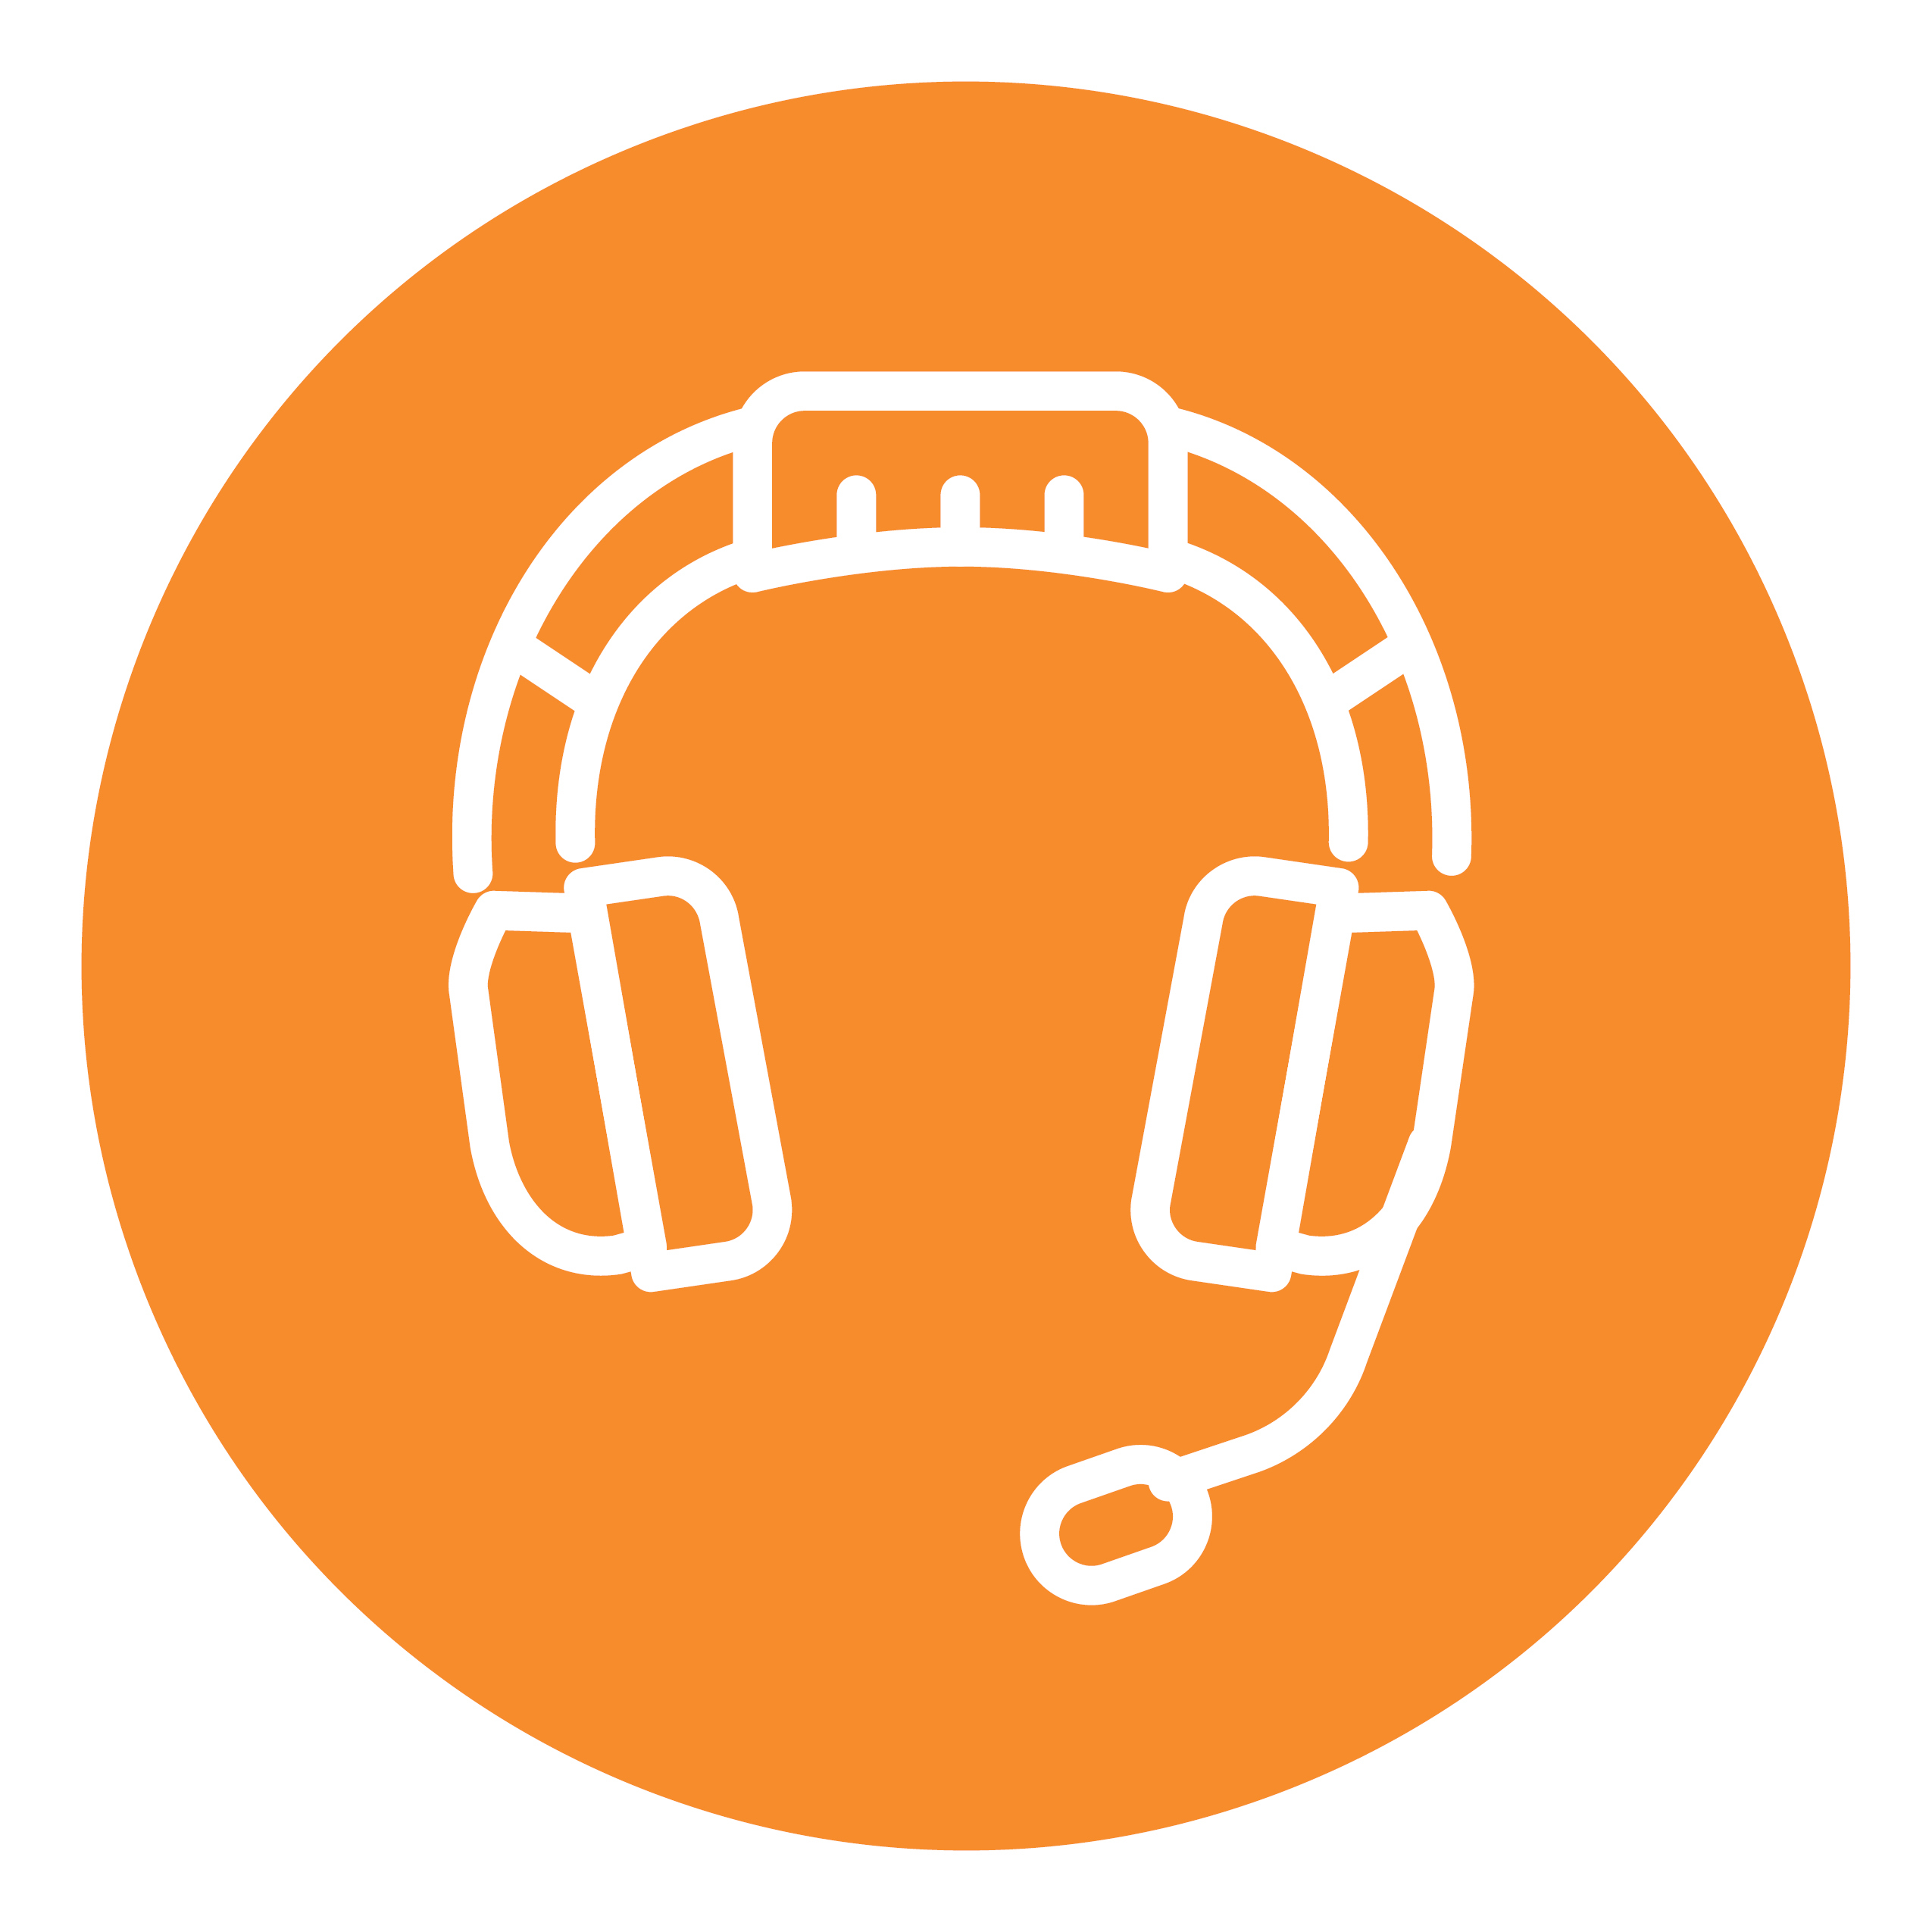 An orange circle contains the image of a gaming headset